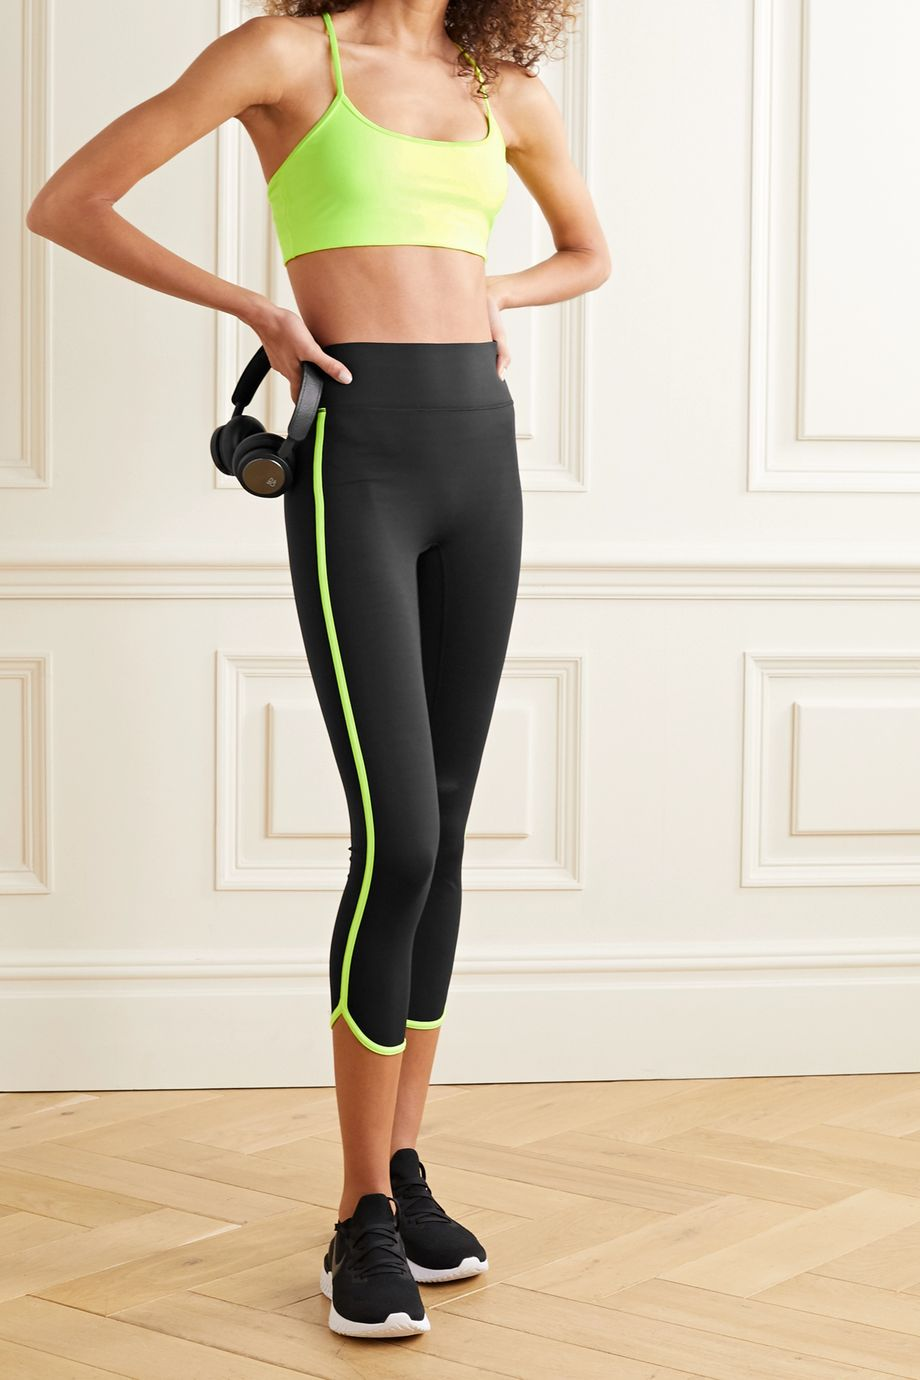 All Access Vinyl Record verkürzte Stretch-Leggings mit Streifen